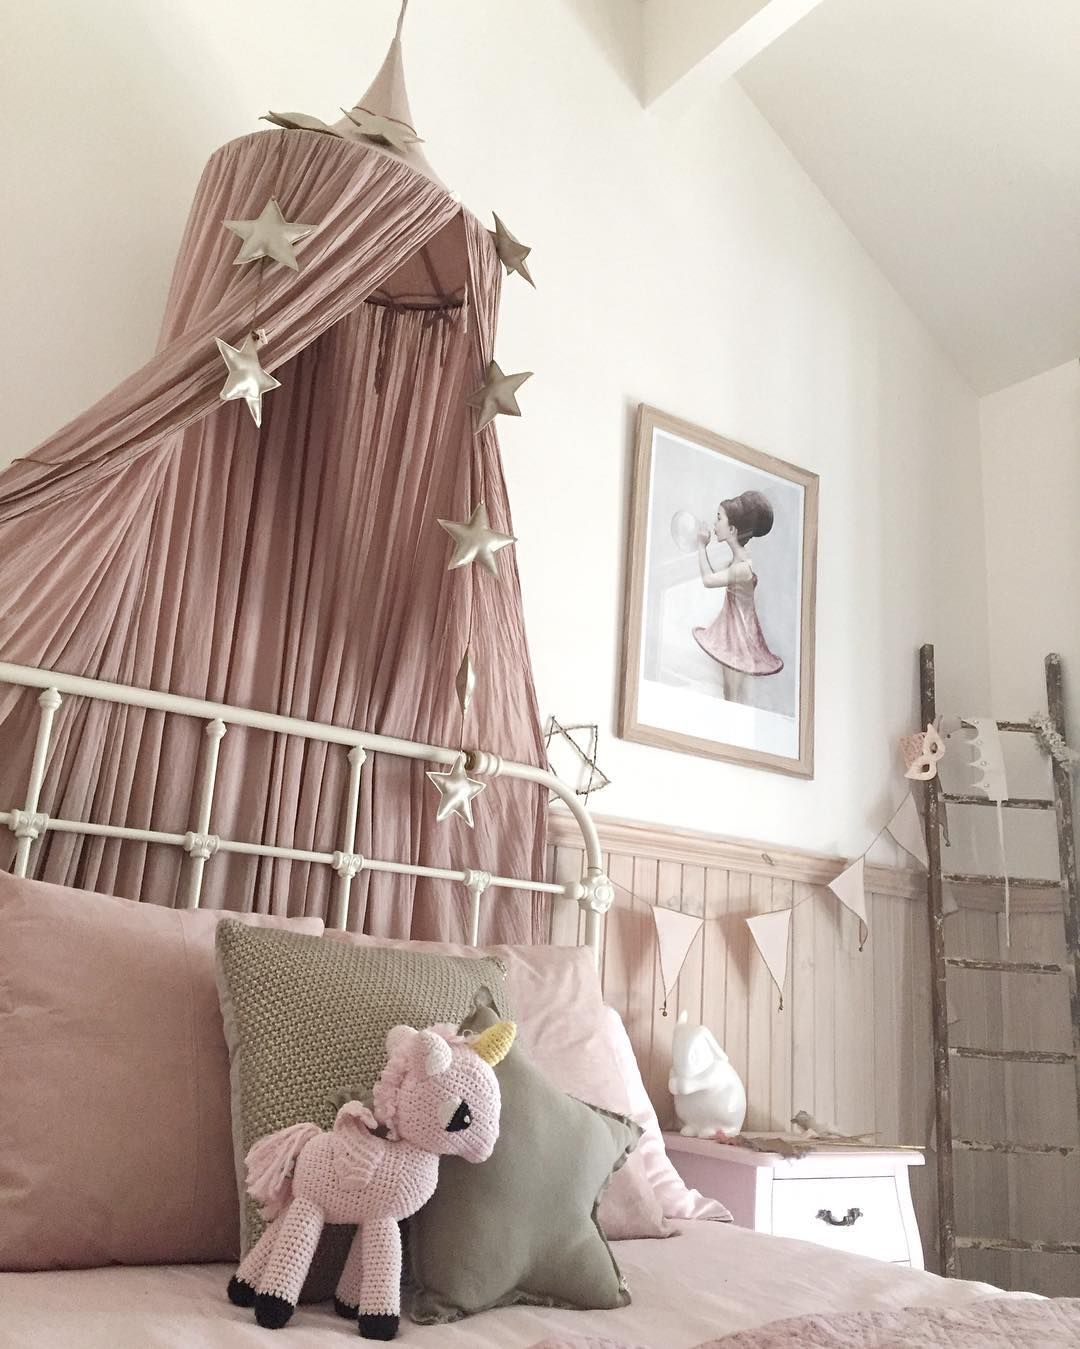 Pink Bedroom Ideas That Can Be Pretty And Peaceful Or: Dusty Pink Canopy & Gold Mini Star Garland